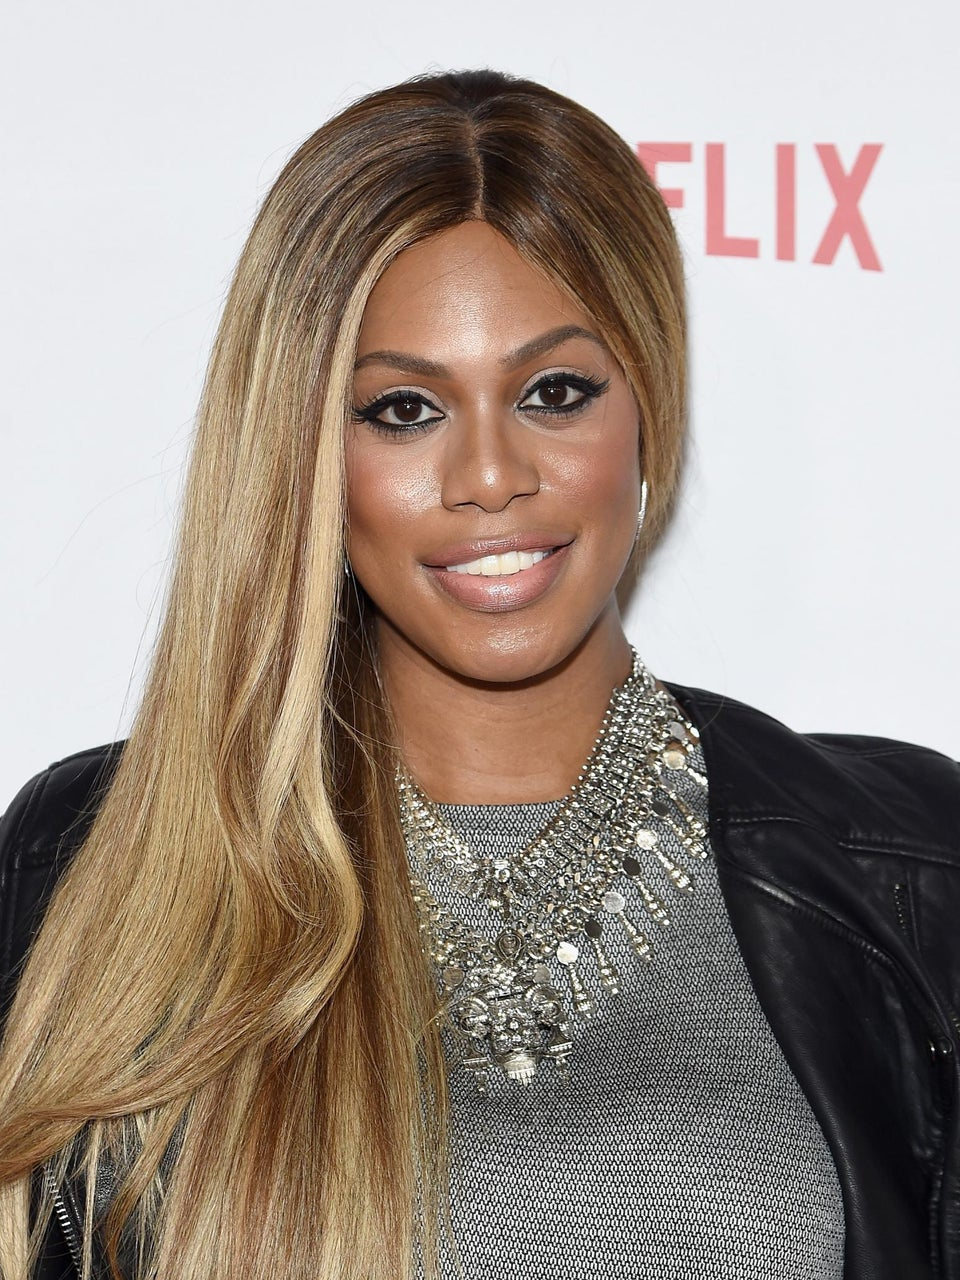 Laverne Cox Shares Wisdom With Young Transgender Girl